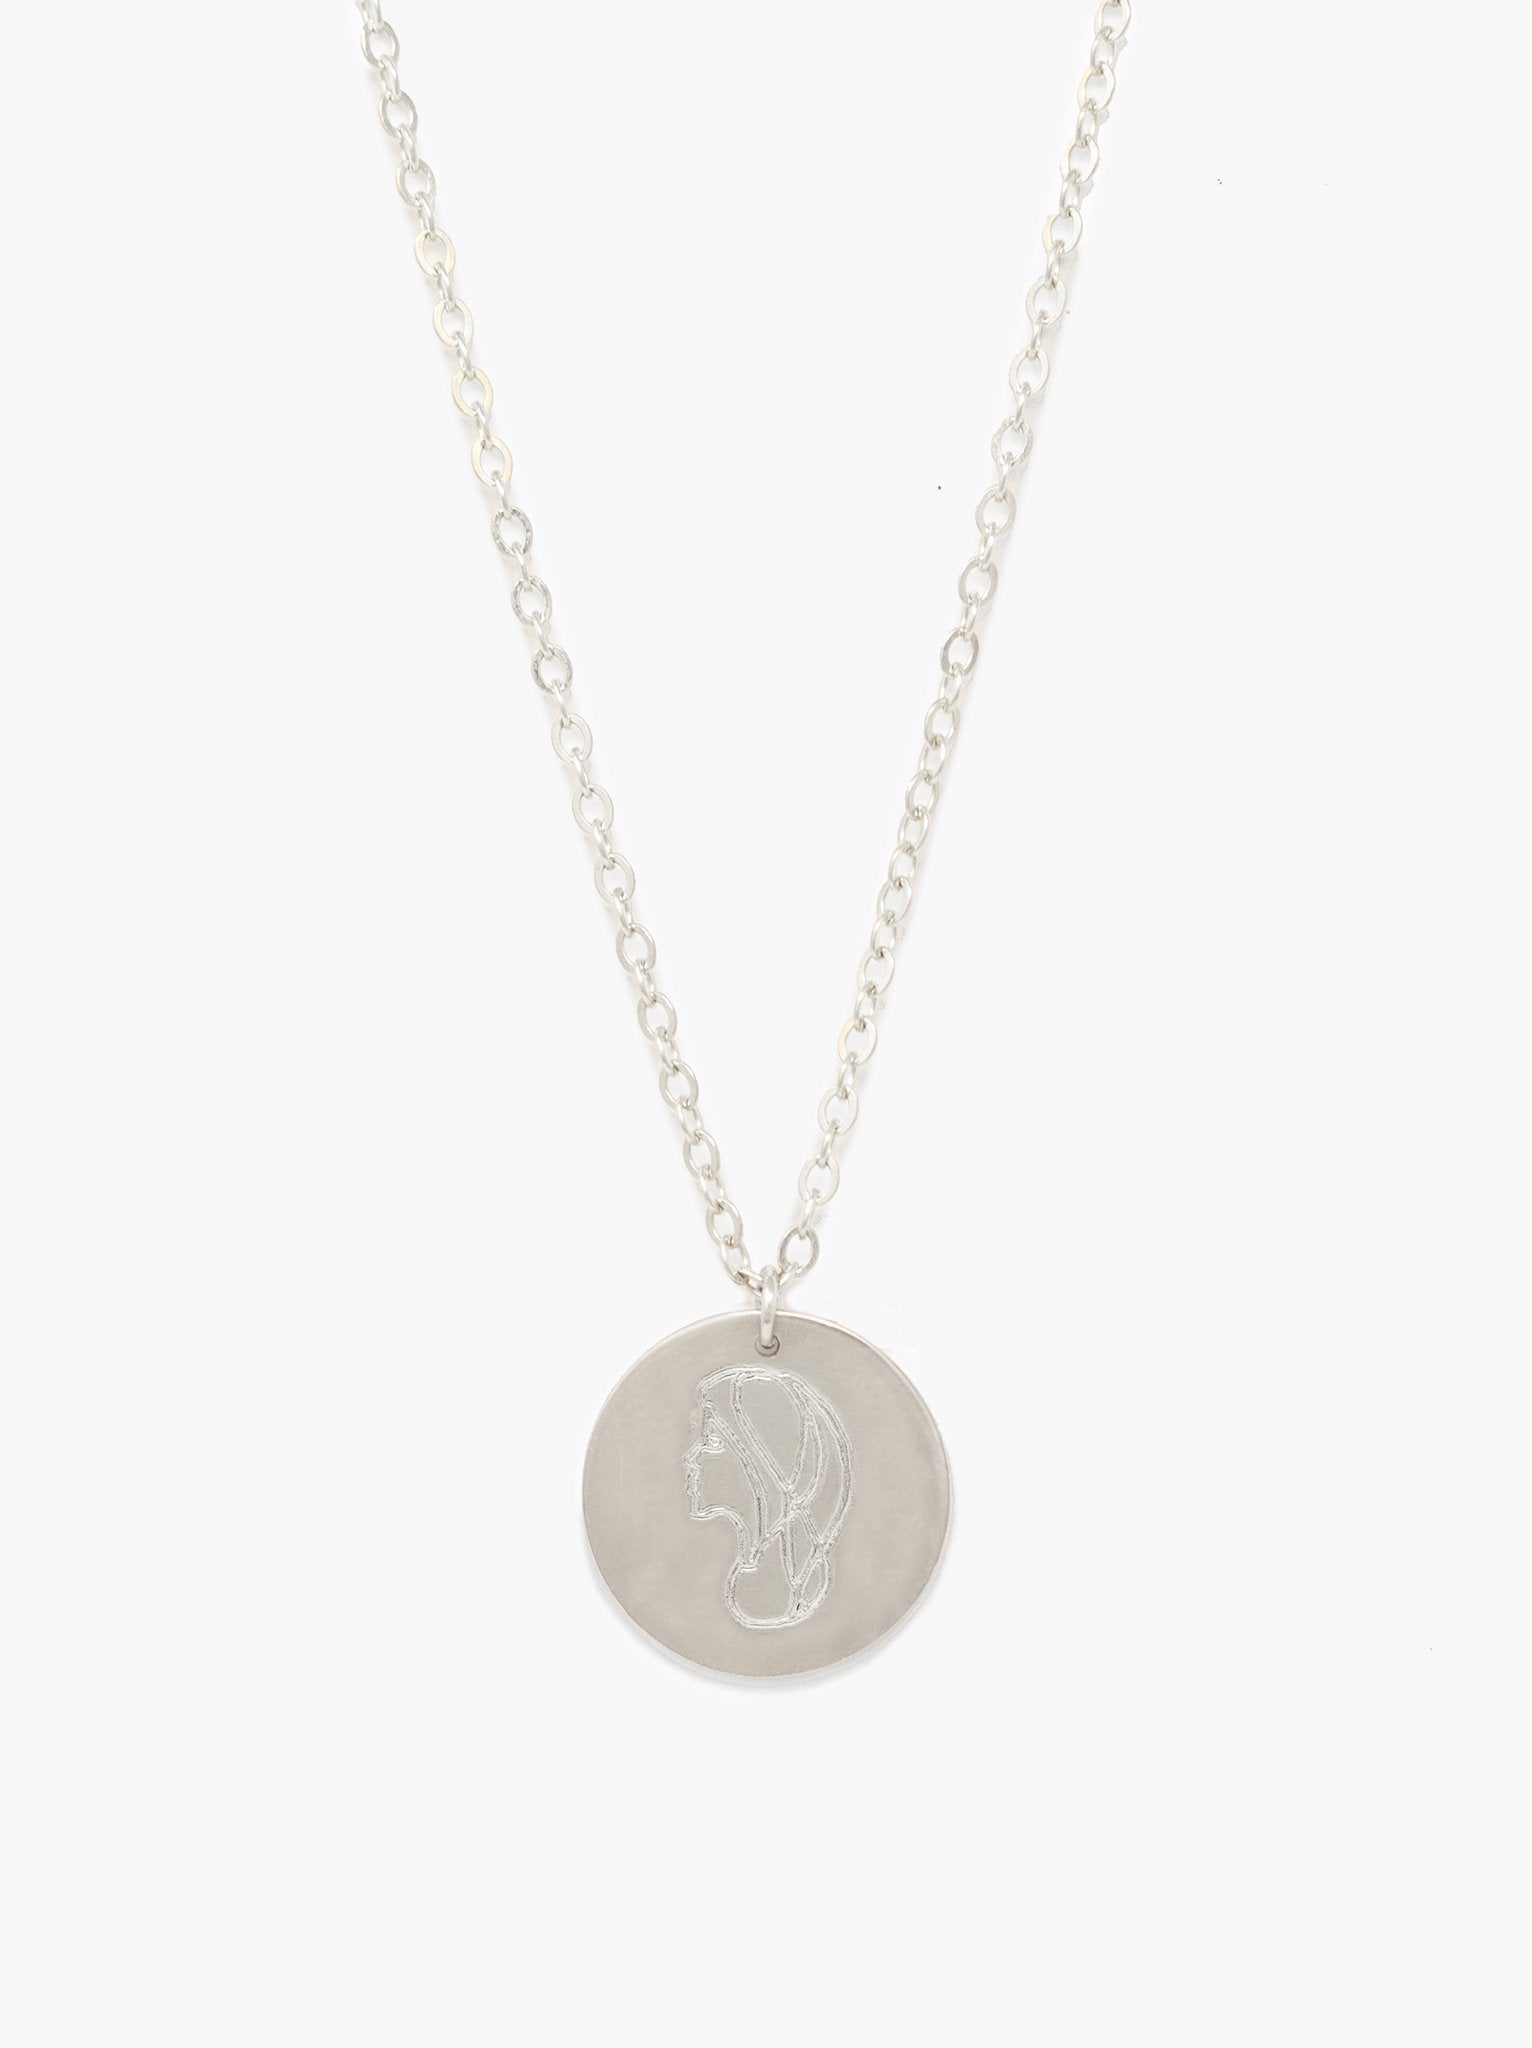 She's Worth More Worth Portrait Heirloom Necklace